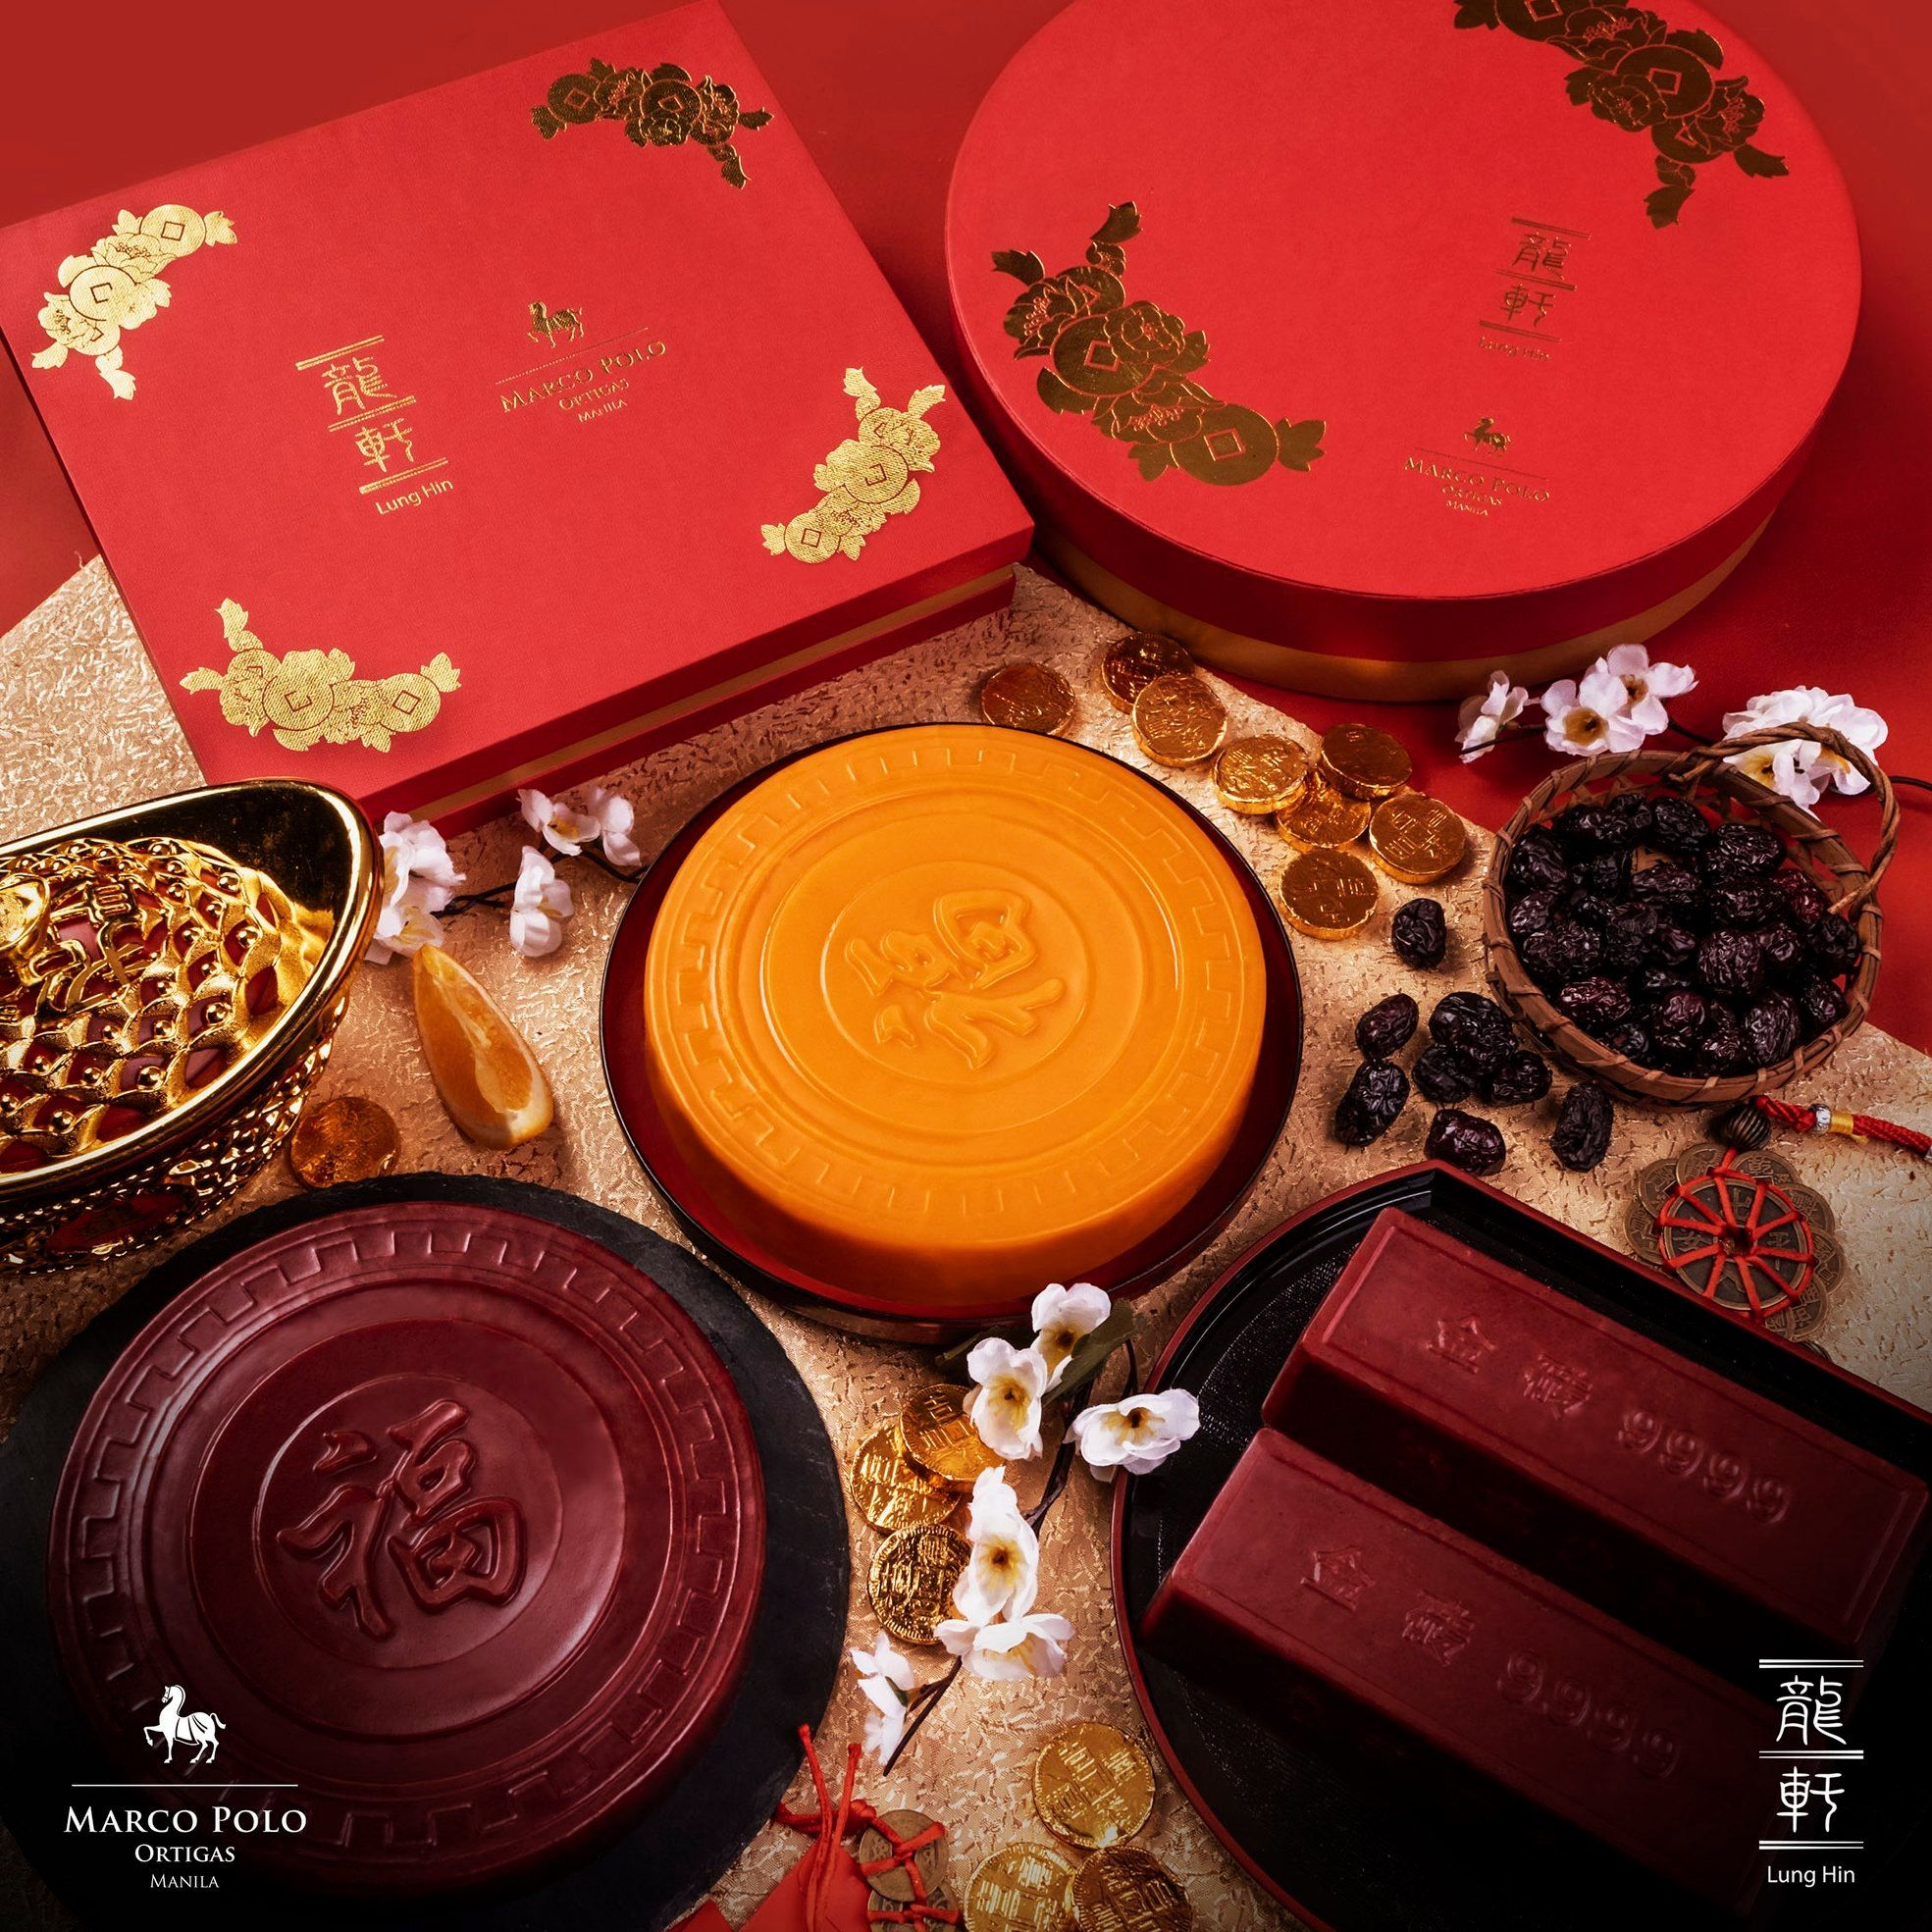 Lung Hin Celebrates The Year of the Metal Ox With Nian Gao Series